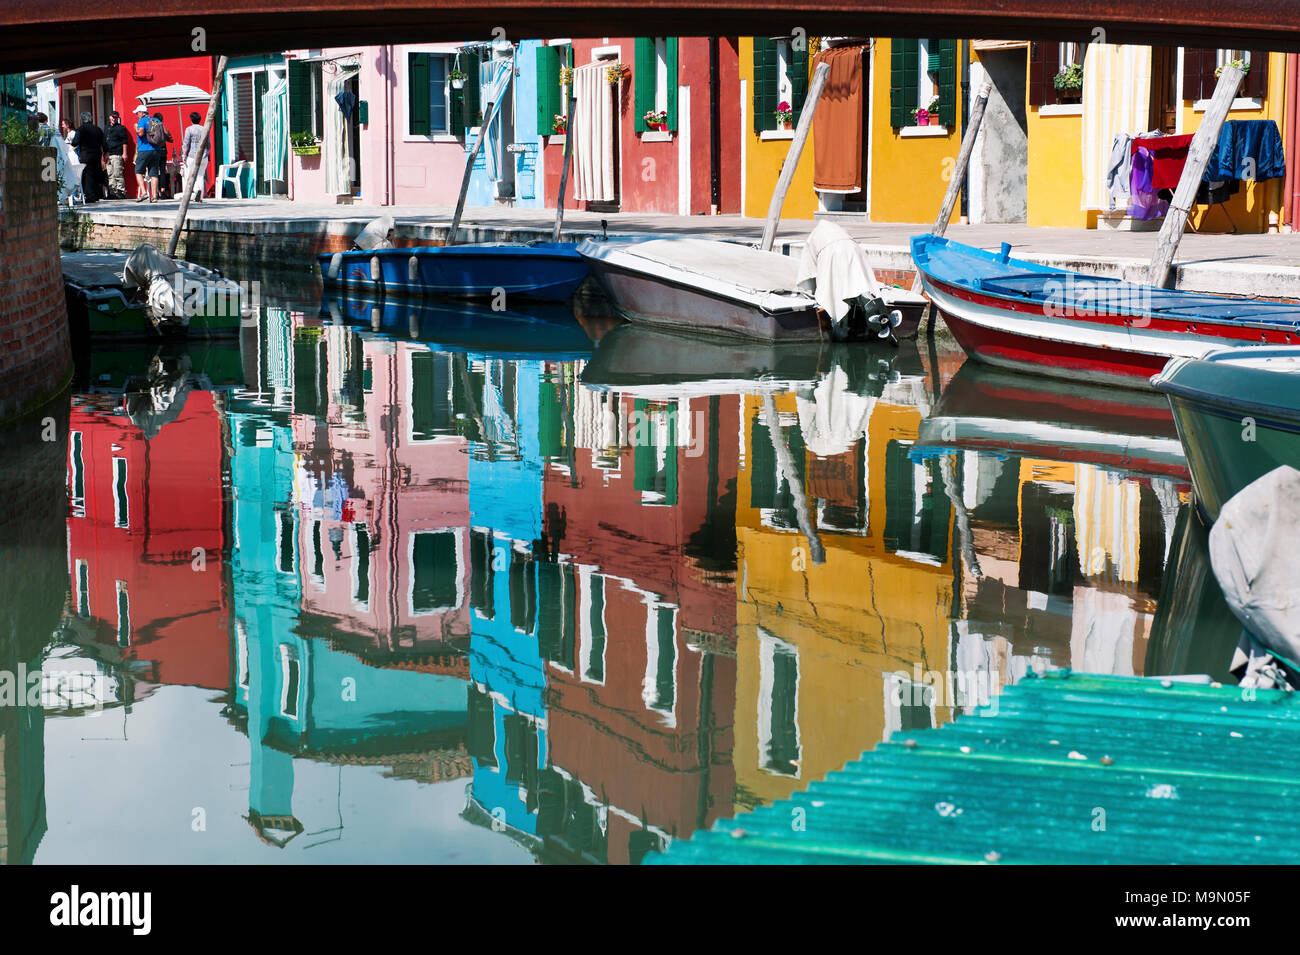 BURANO, VENICE, ITALY - APRIL 16, 2017 : colorful houses reflection in the canal - Stock Image